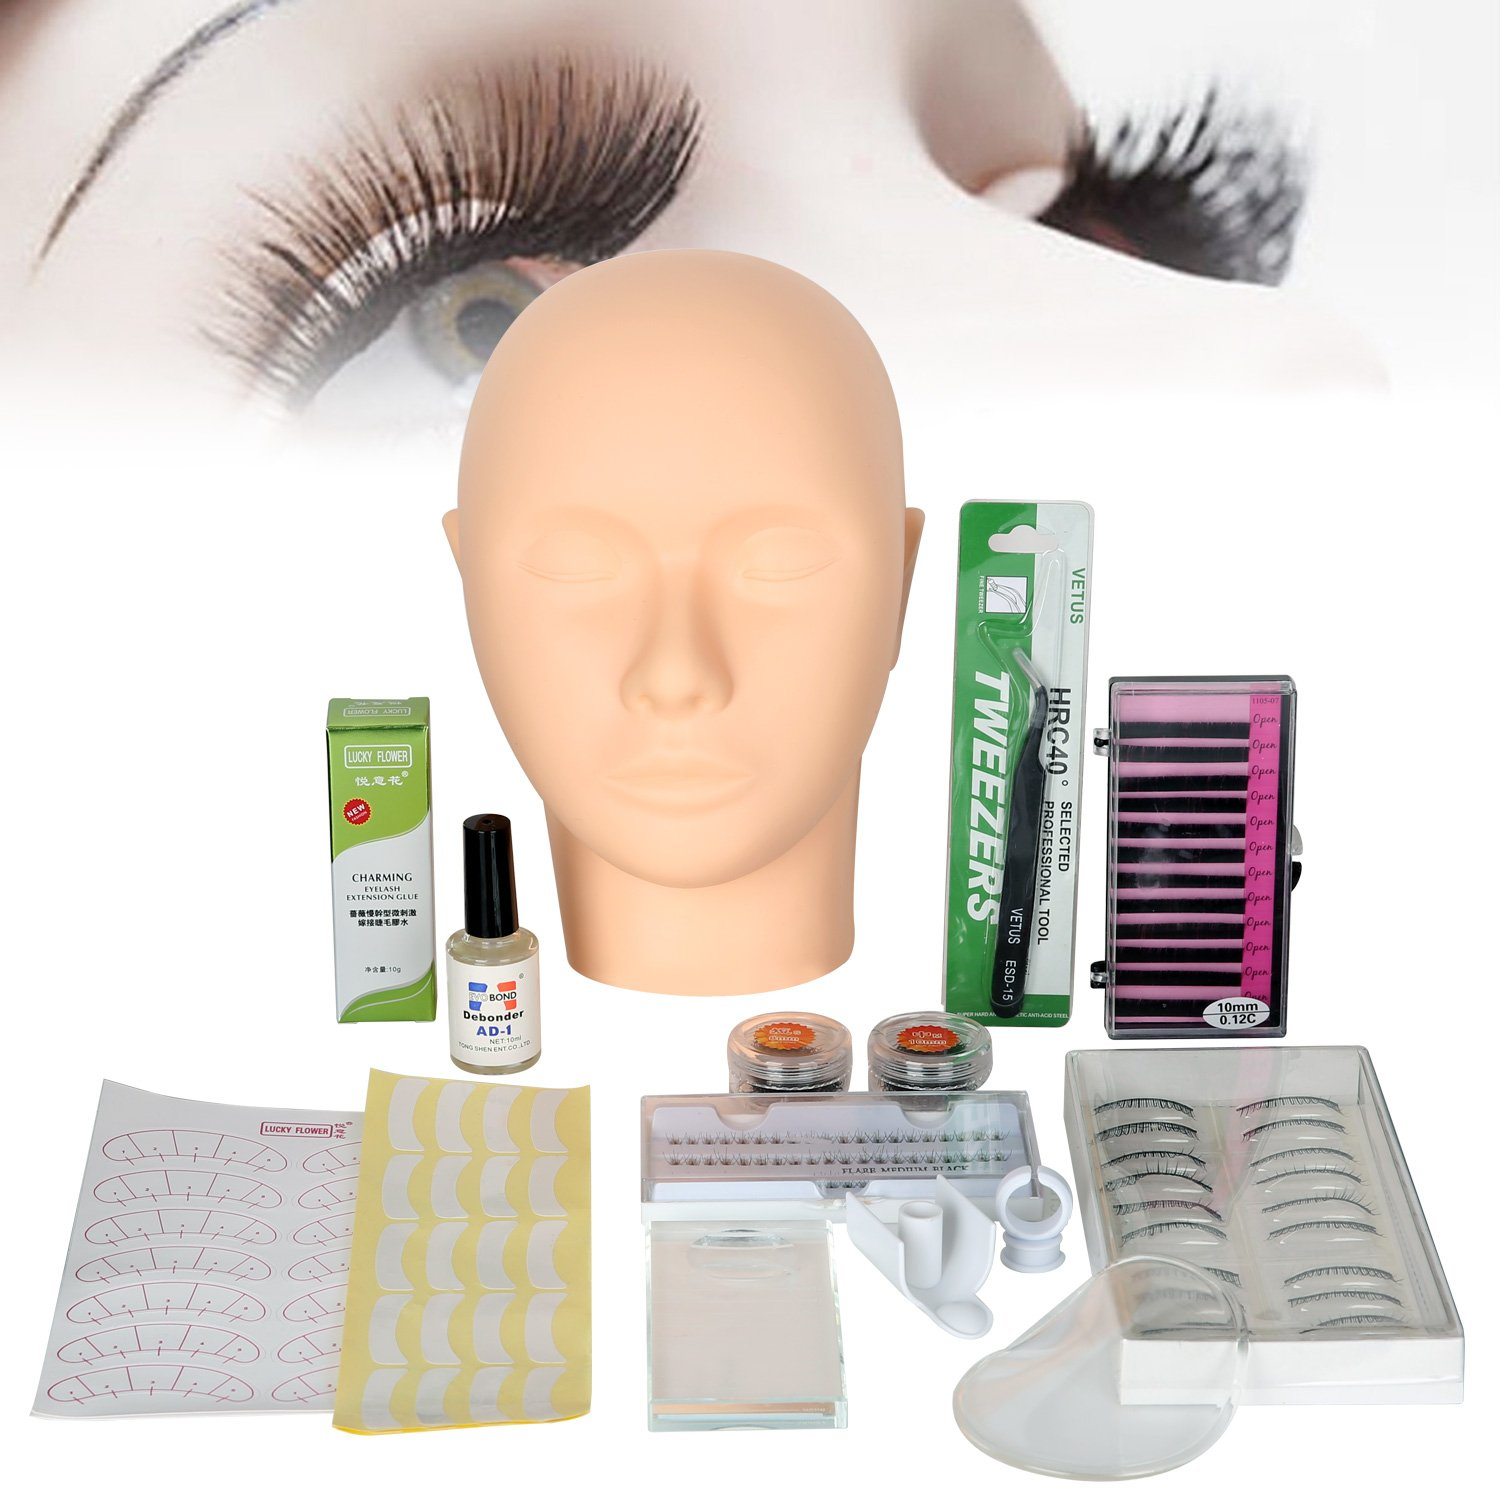 All in 1 Practice Mannequin Head for Makeup Training and Eyelash Extension Set, Yevita Professional Head Model Glue Tool Kit with Elastic Strap for Massage Eye Lashes Graft for Artist